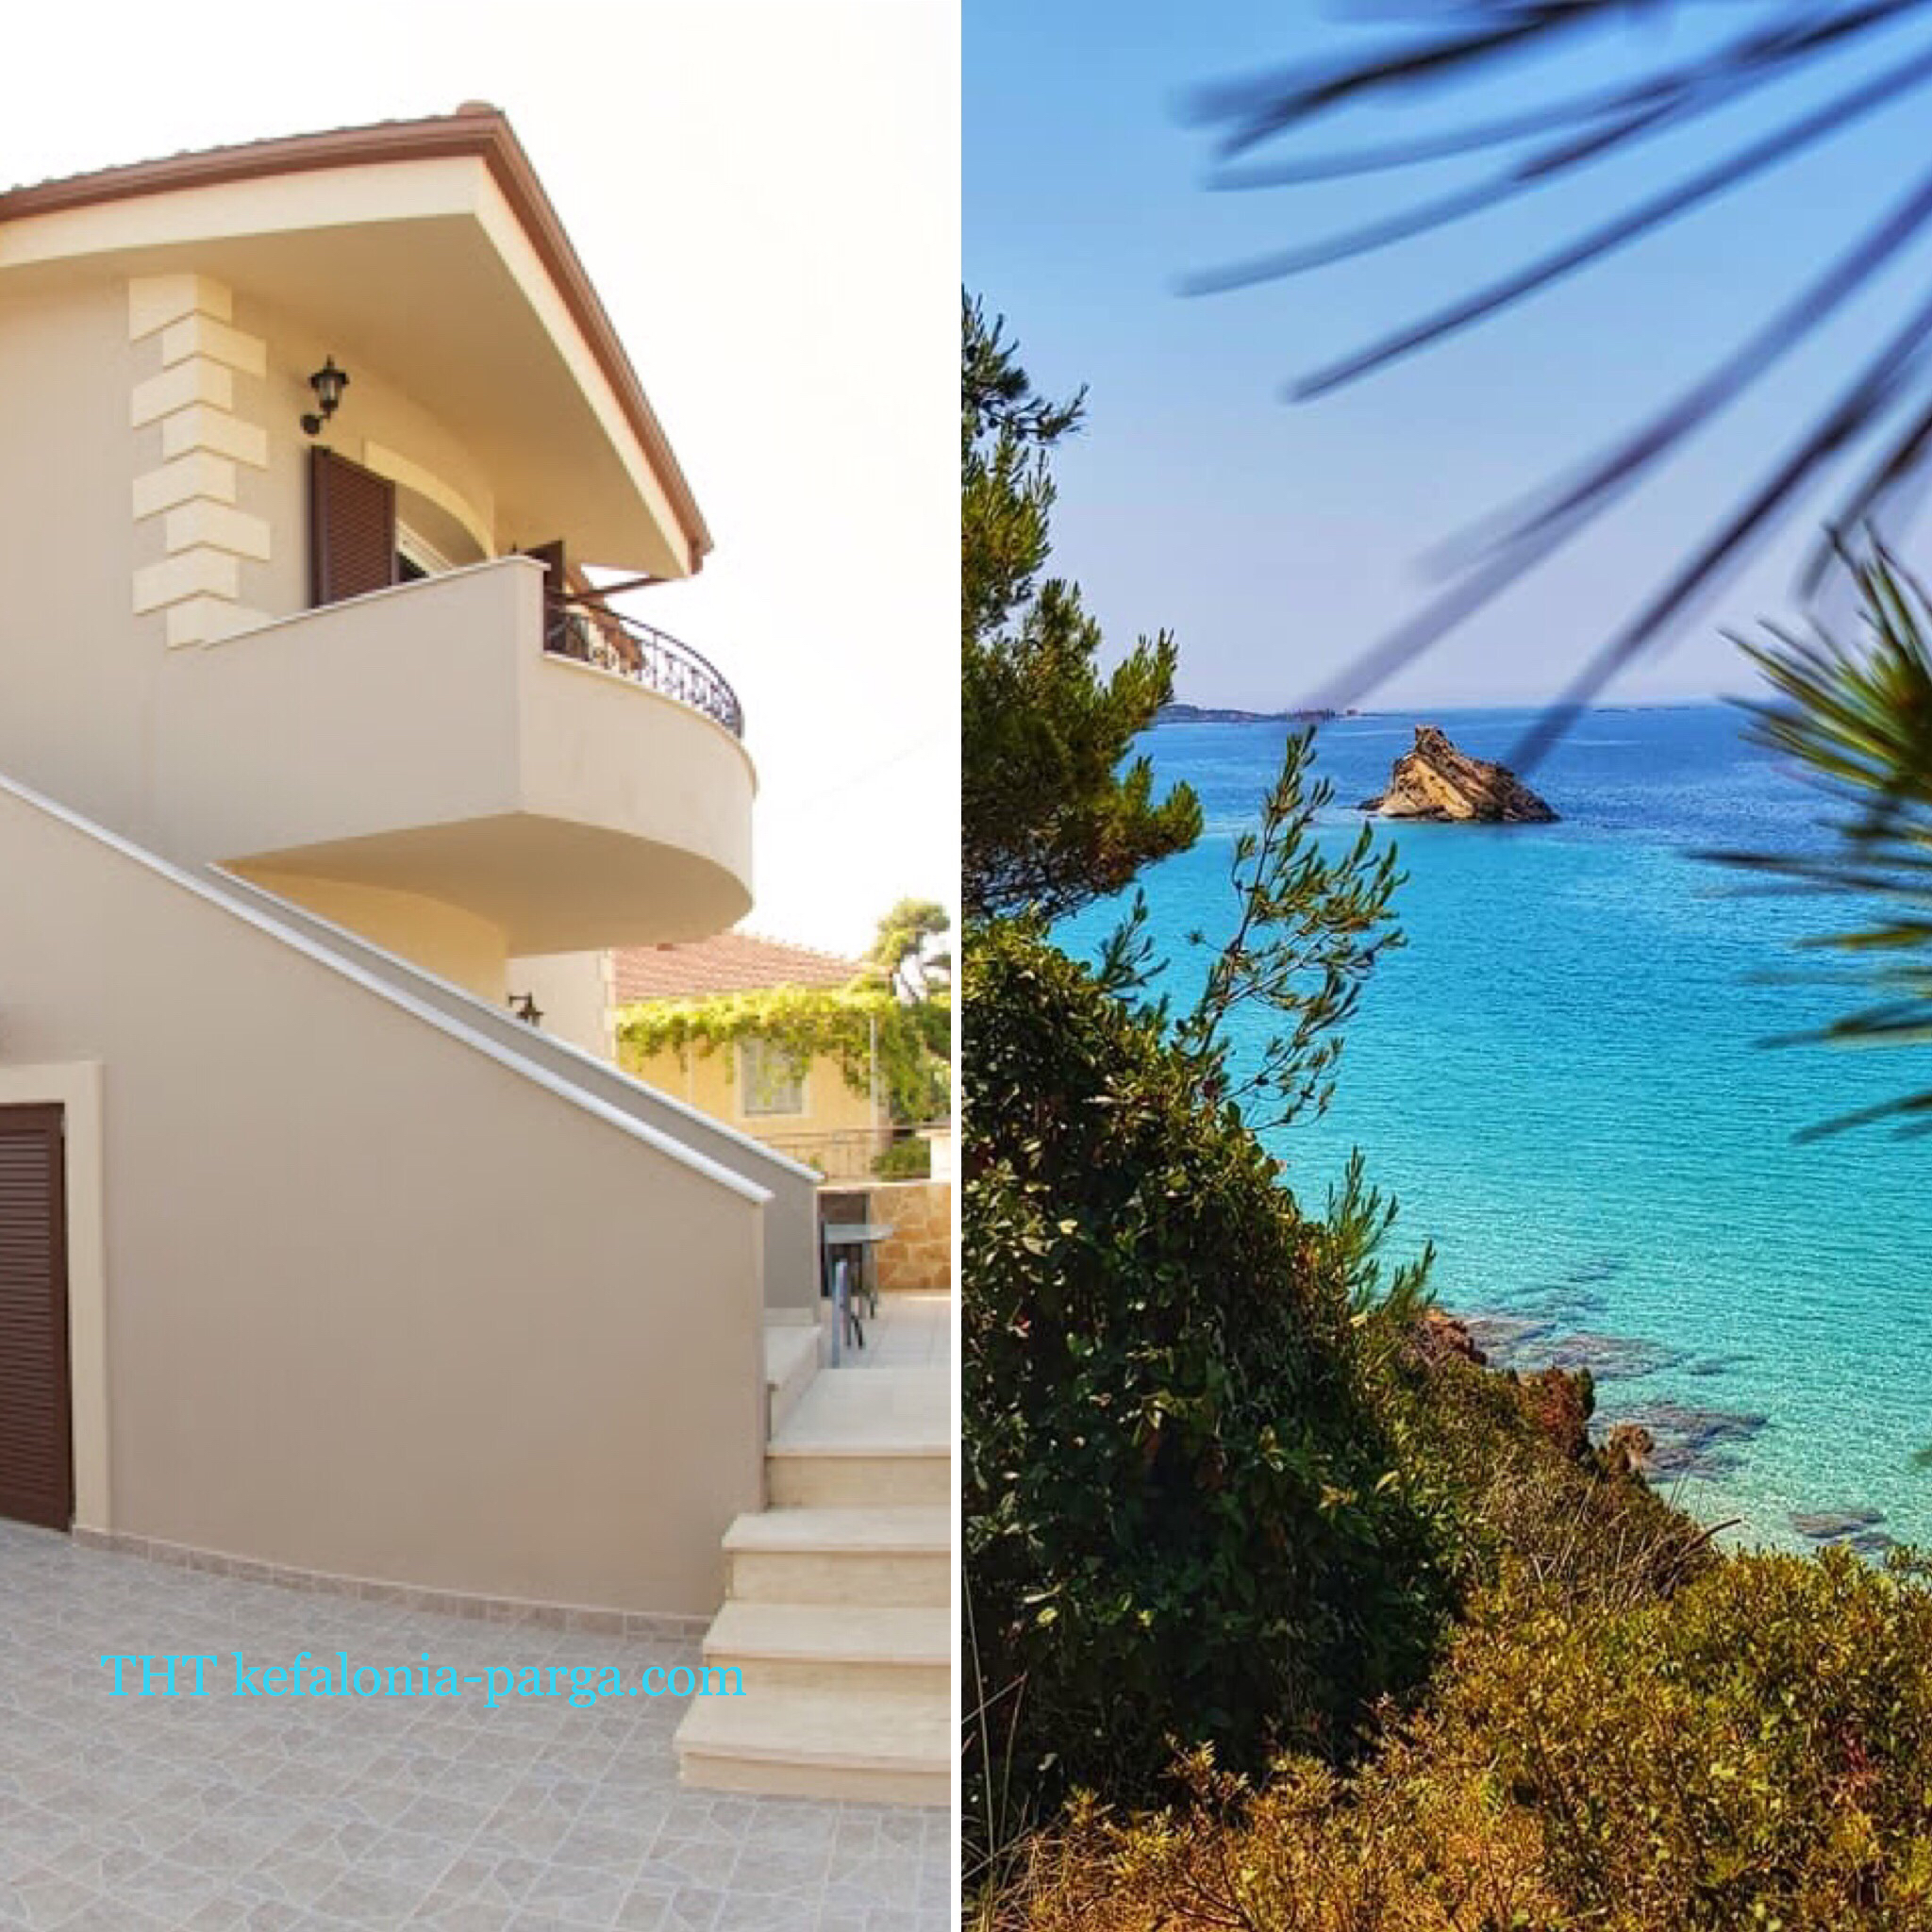 Kefalonia holiday 2020: spacious 2 bedroom apartments by Makris Gyalos beach, Lassi. Greece vacations.